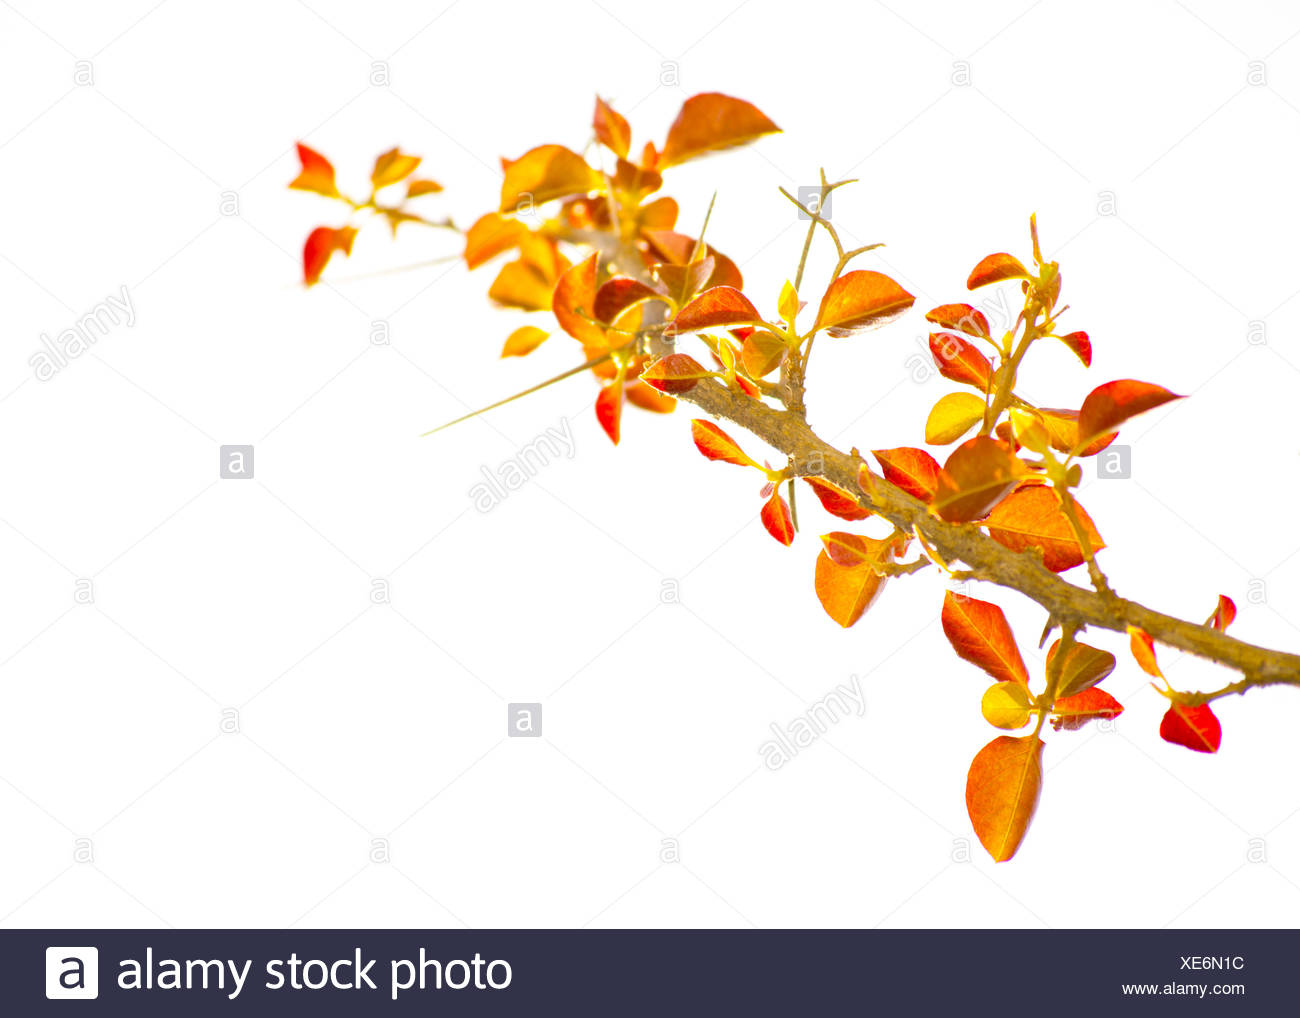 Color Edited Fantasy Isolated Plant - Stock Image